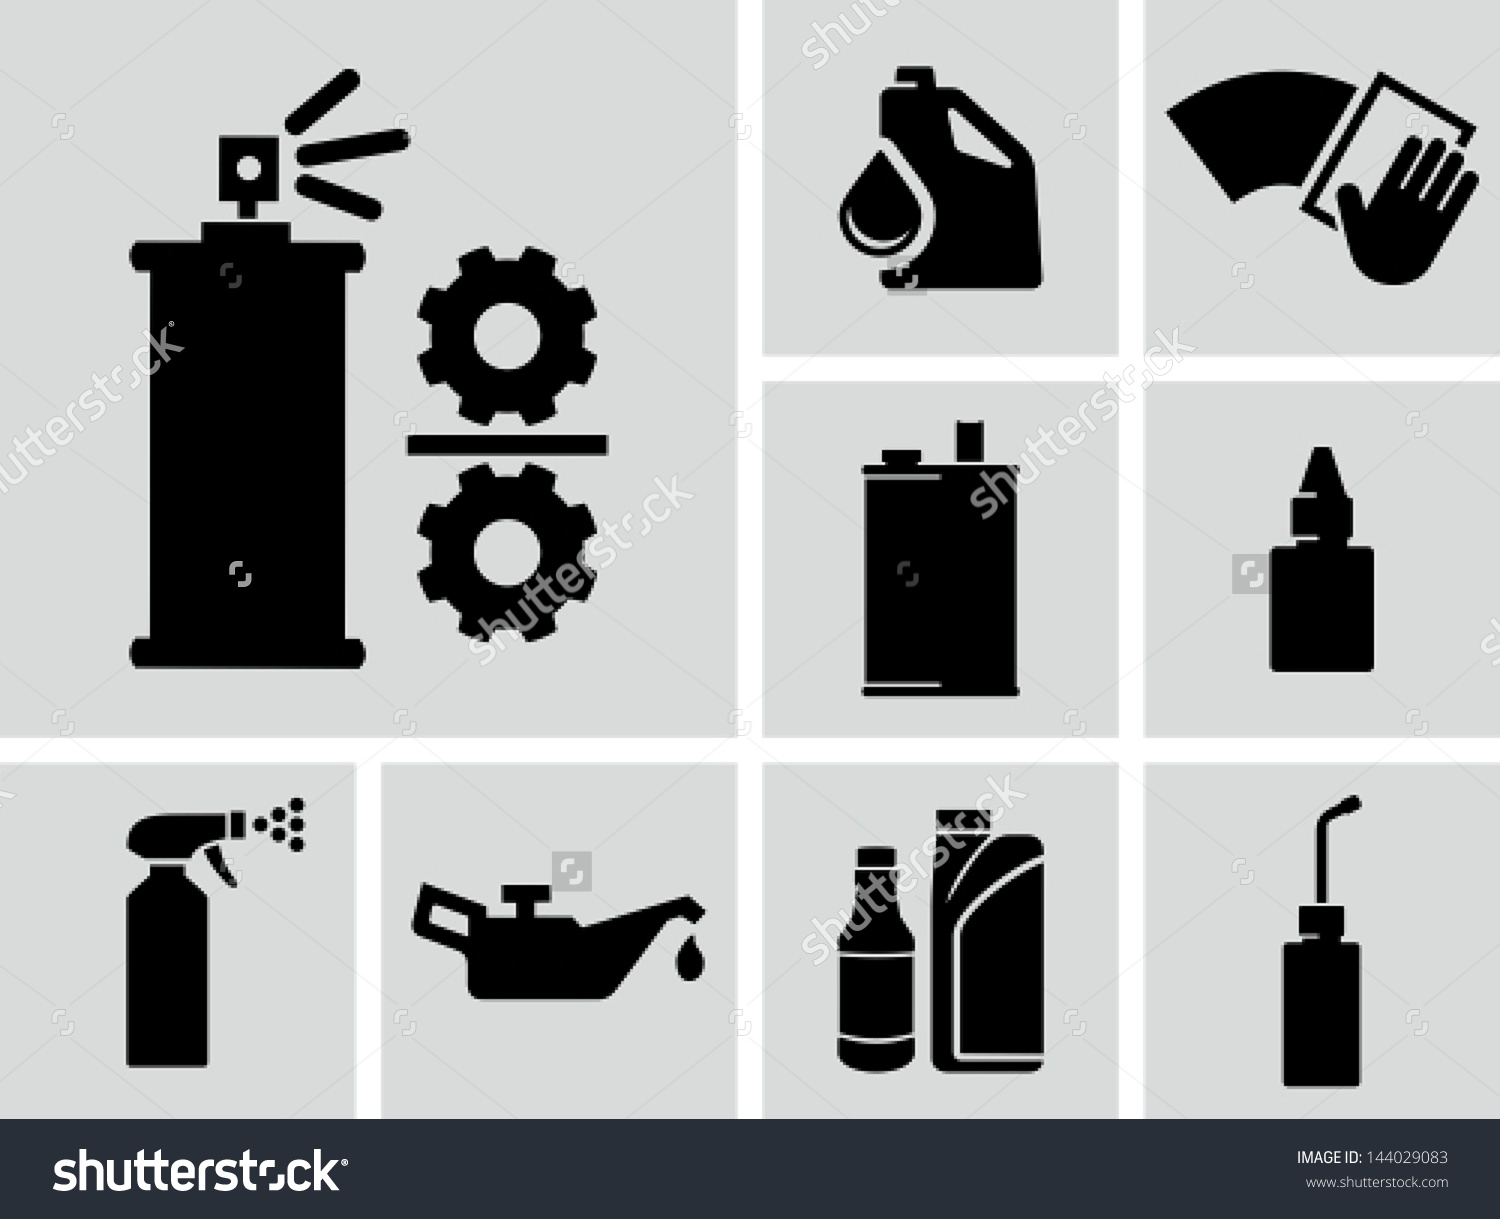 Lubricants Vector Icons Stock Vector 144029083.